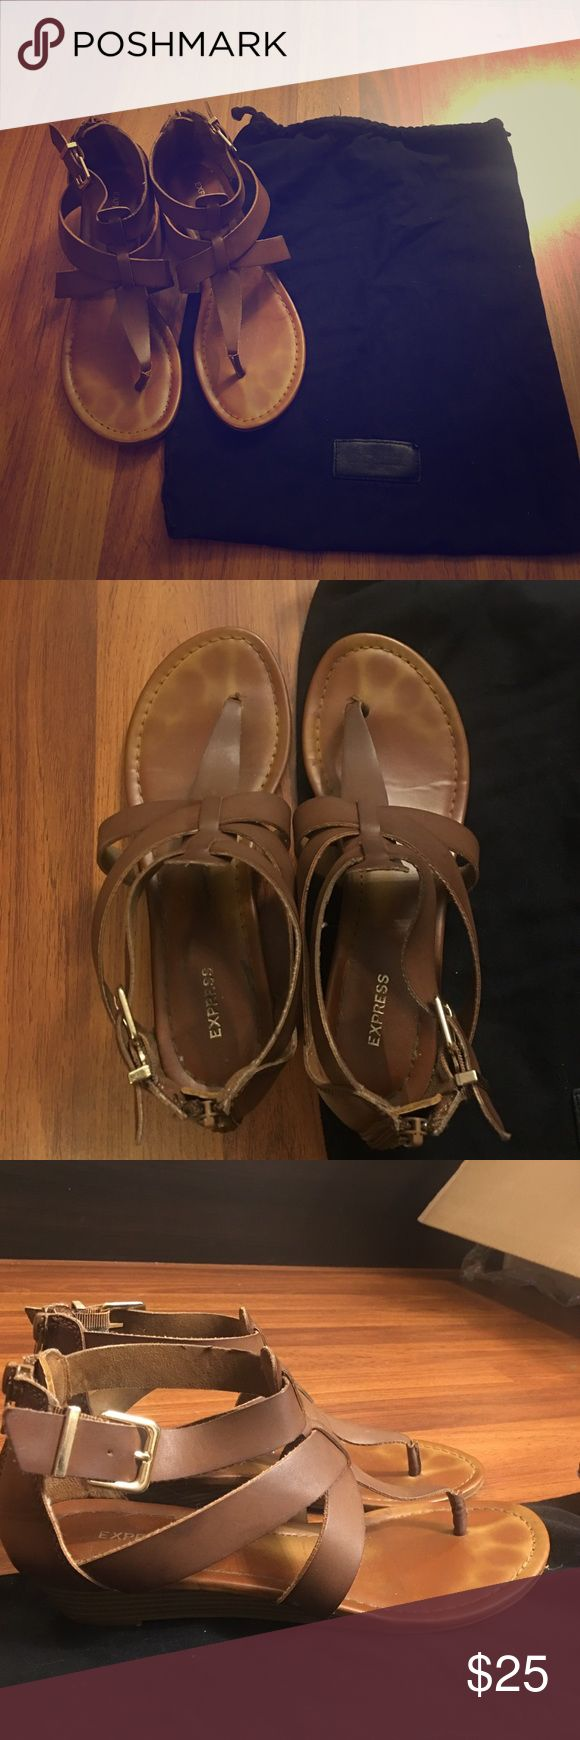 Express sandals Great condition! Wore a couple times. Size 8, true to size. Throwing in a drawstring bag from express that I got for free with a pair of shoes Express Shoes Sandals